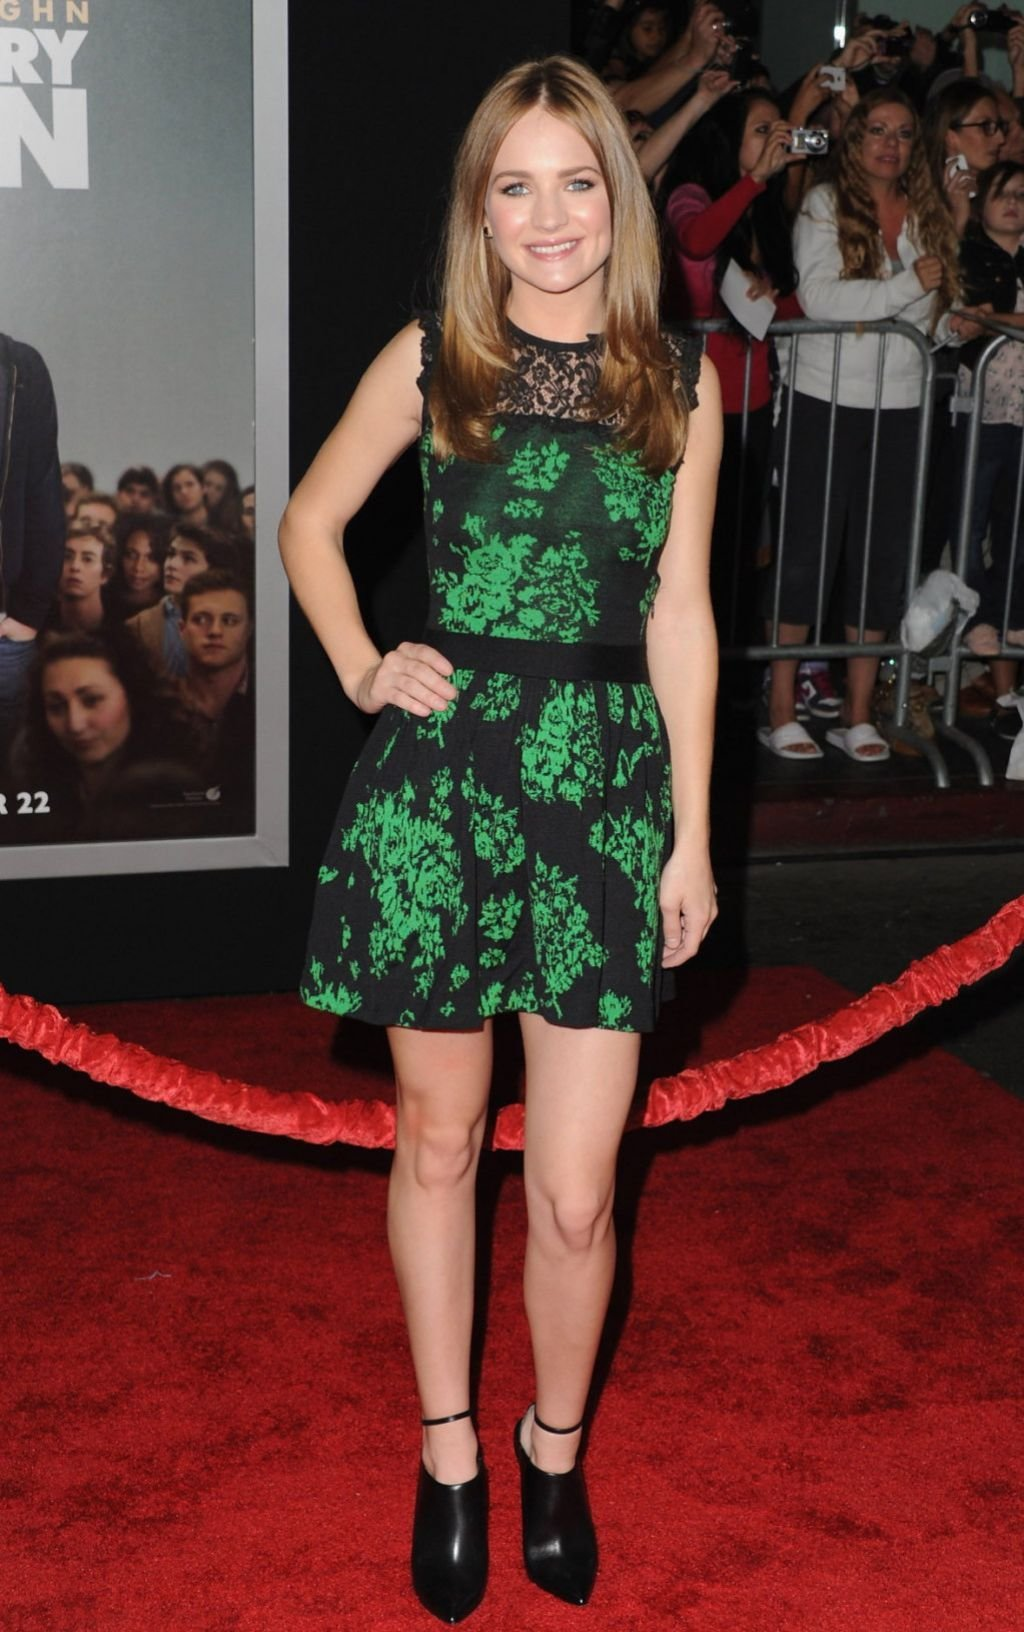 The Best Britt Robertson Red Carpet Photos Delivery Man Movie Pictures